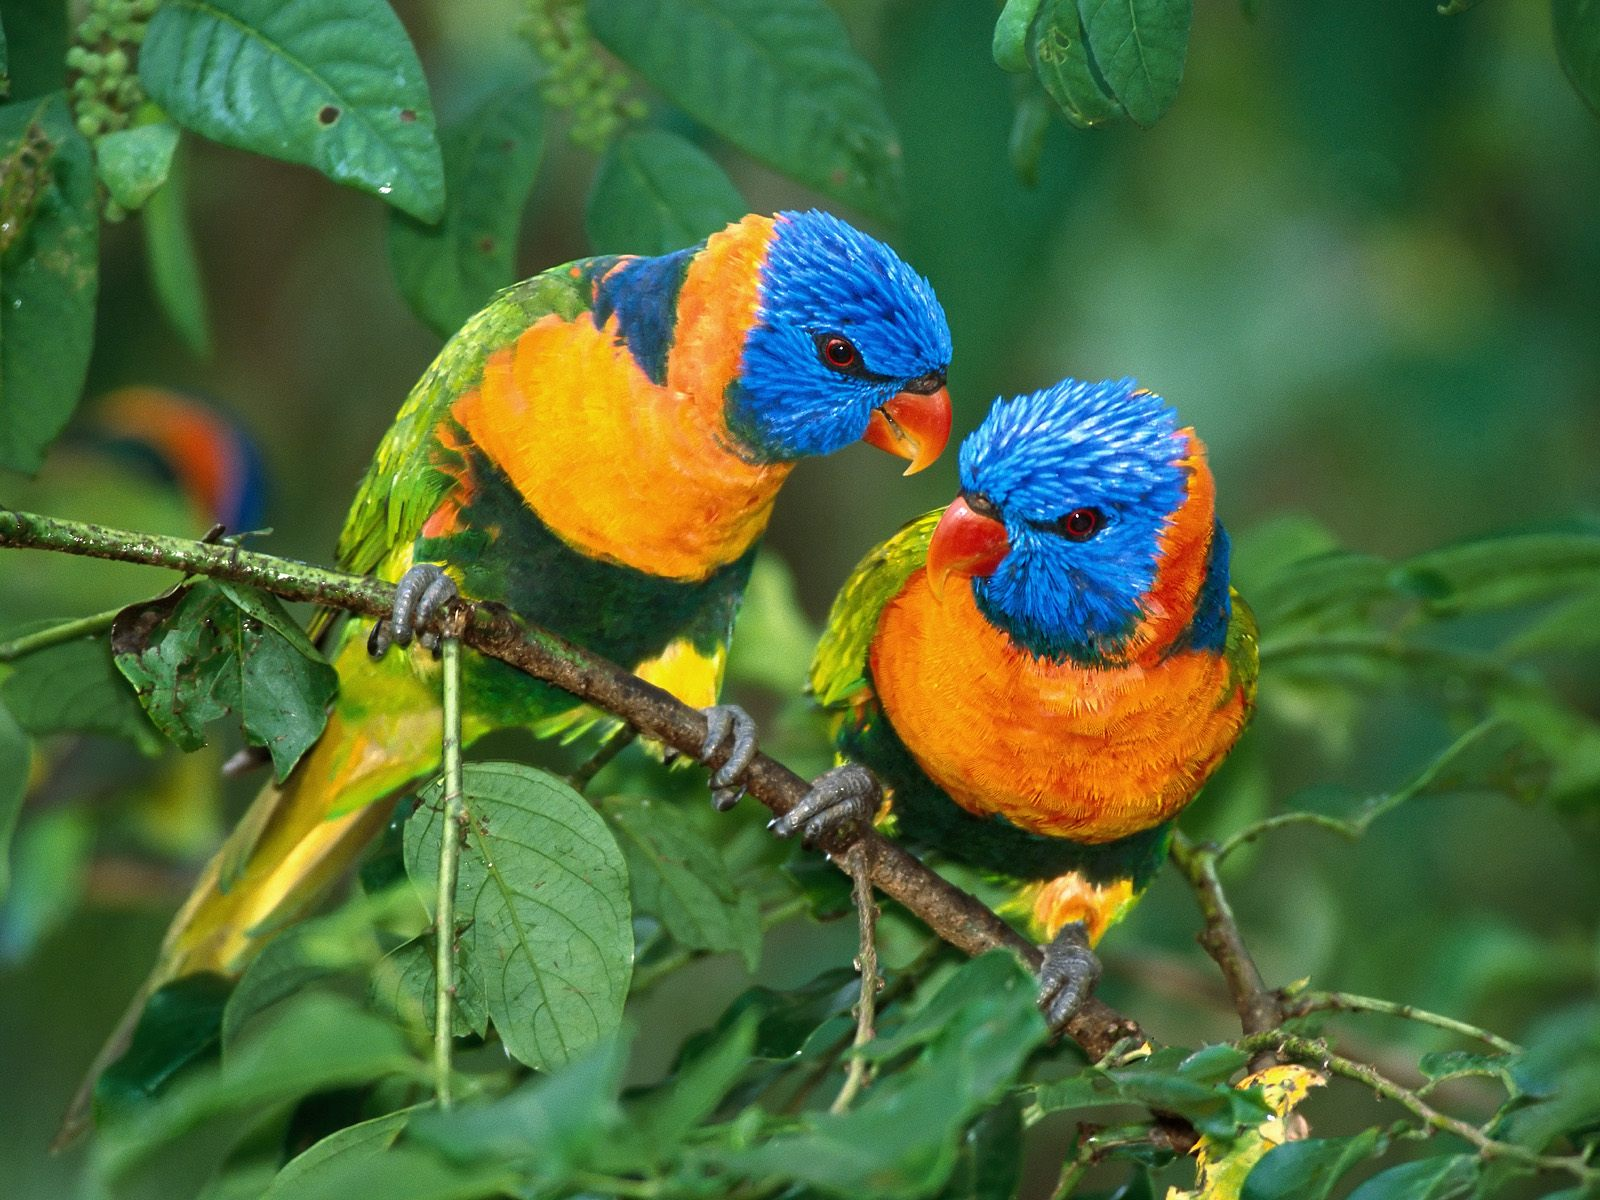 Free Download Wallpaper Gallery Love Bird Wallpaper 1 1600x1200 For Your Desktop Mobile Tablet Explore 73 Love Birds Wallpaper Free Wallpapers And Screensavers Birds Free Love Screensavers And Wallpaper